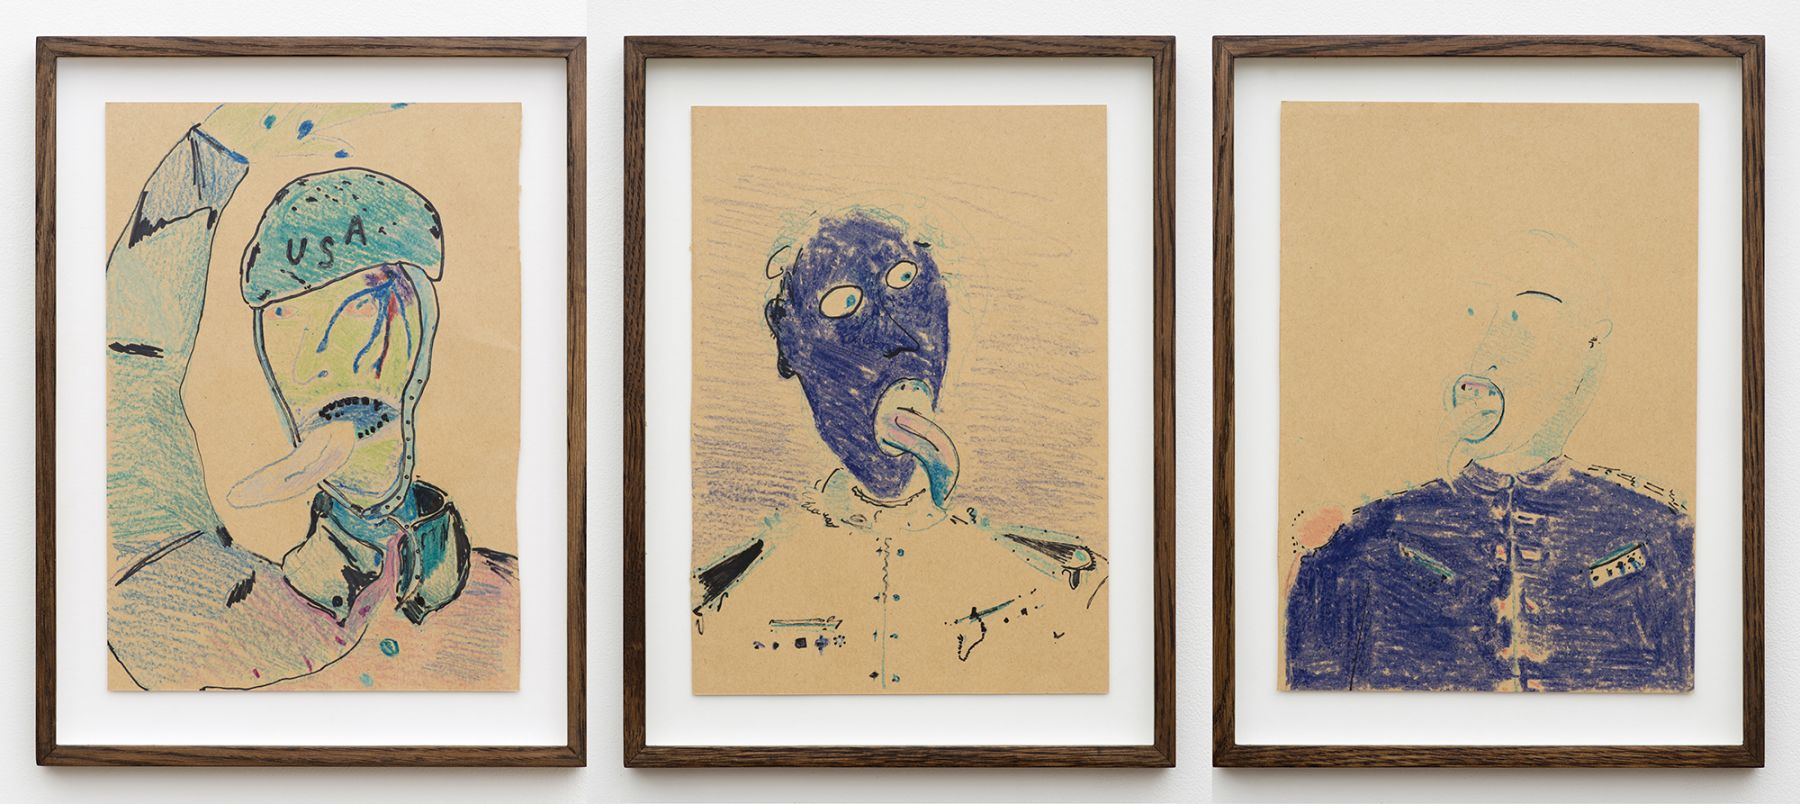 Calvin Marcus Military Man with Tongue, 2015 Crayon and sharpie on paper Paper: 11 1/2 x 8 inches (29.2 x 20.3 cm) each Frame: 14 1/4 x 10 3/4 inches (36.2 x 27.3 cm) each